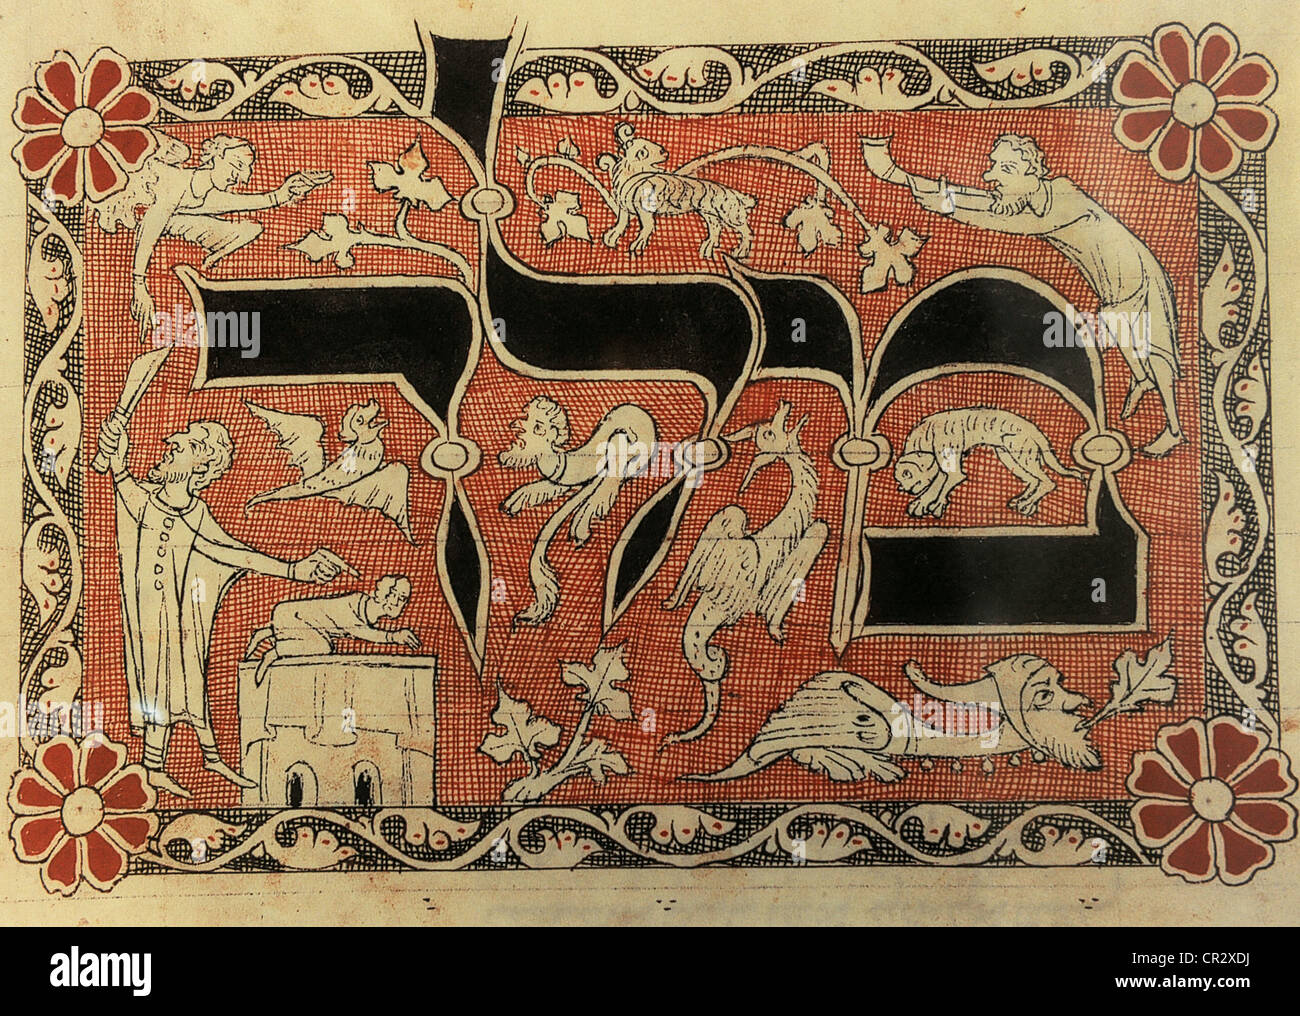 History of the Jews. Middle Ages. Miniauture depicting the Sacrifice of Isaac, taken from a Machzor. Reproduction. - Stock Image